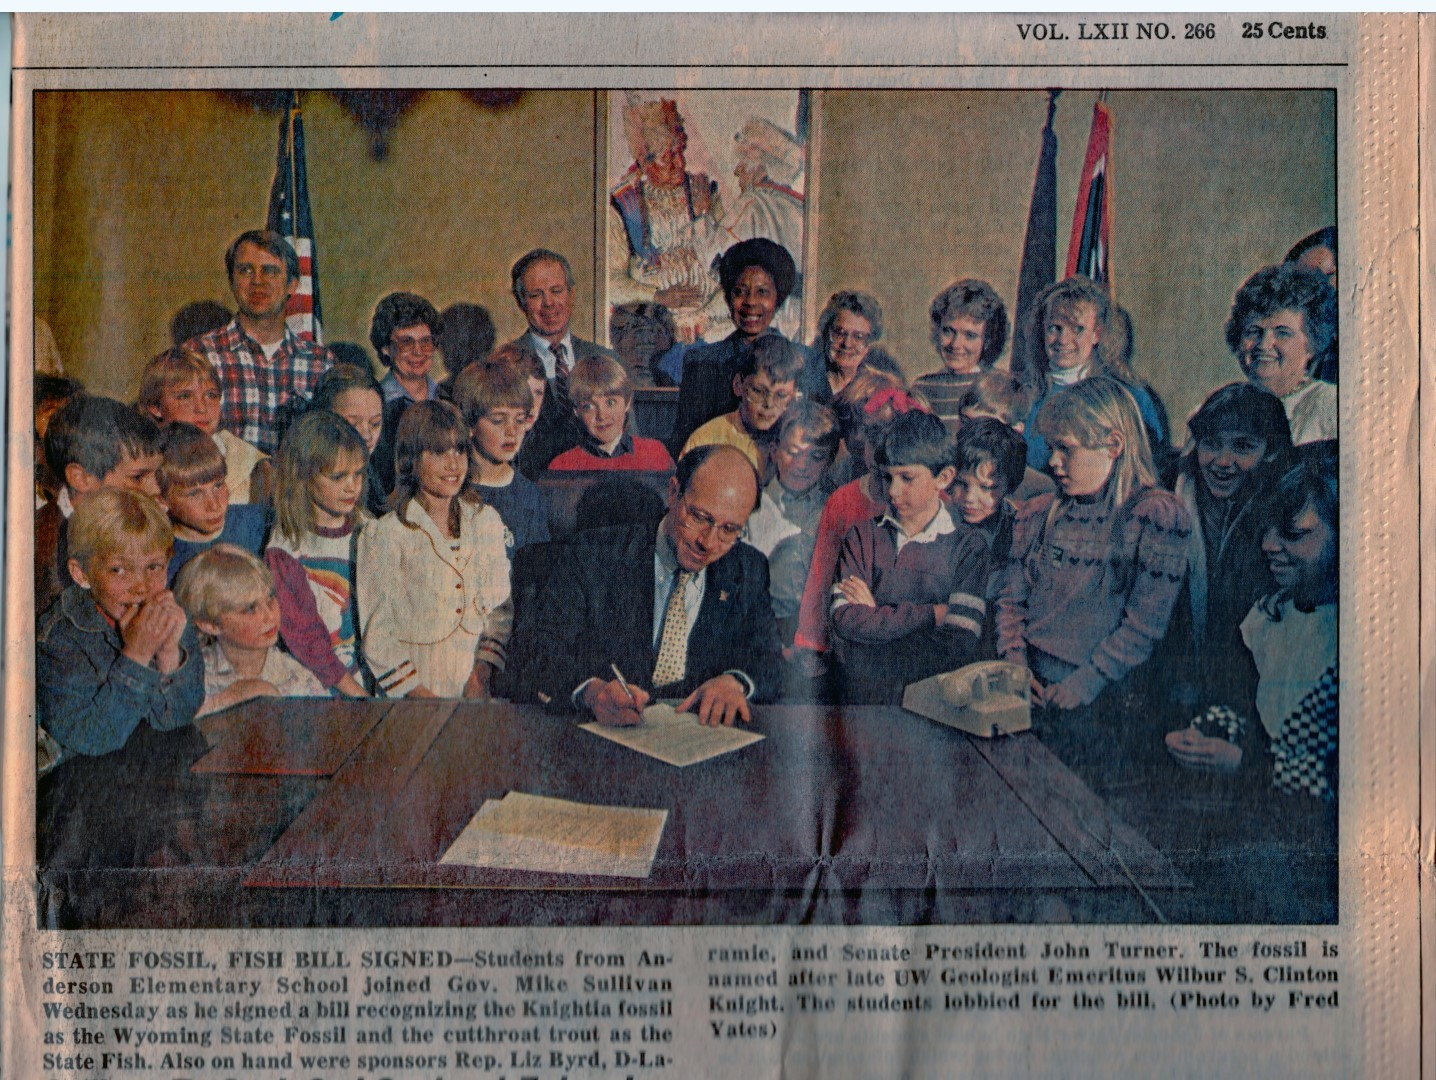 The Fossil Club watches Gov. Mike Sullivan sign a bill designating the Knightia fossil as Wyoming's State Fossil on Feb. 18, 1987.